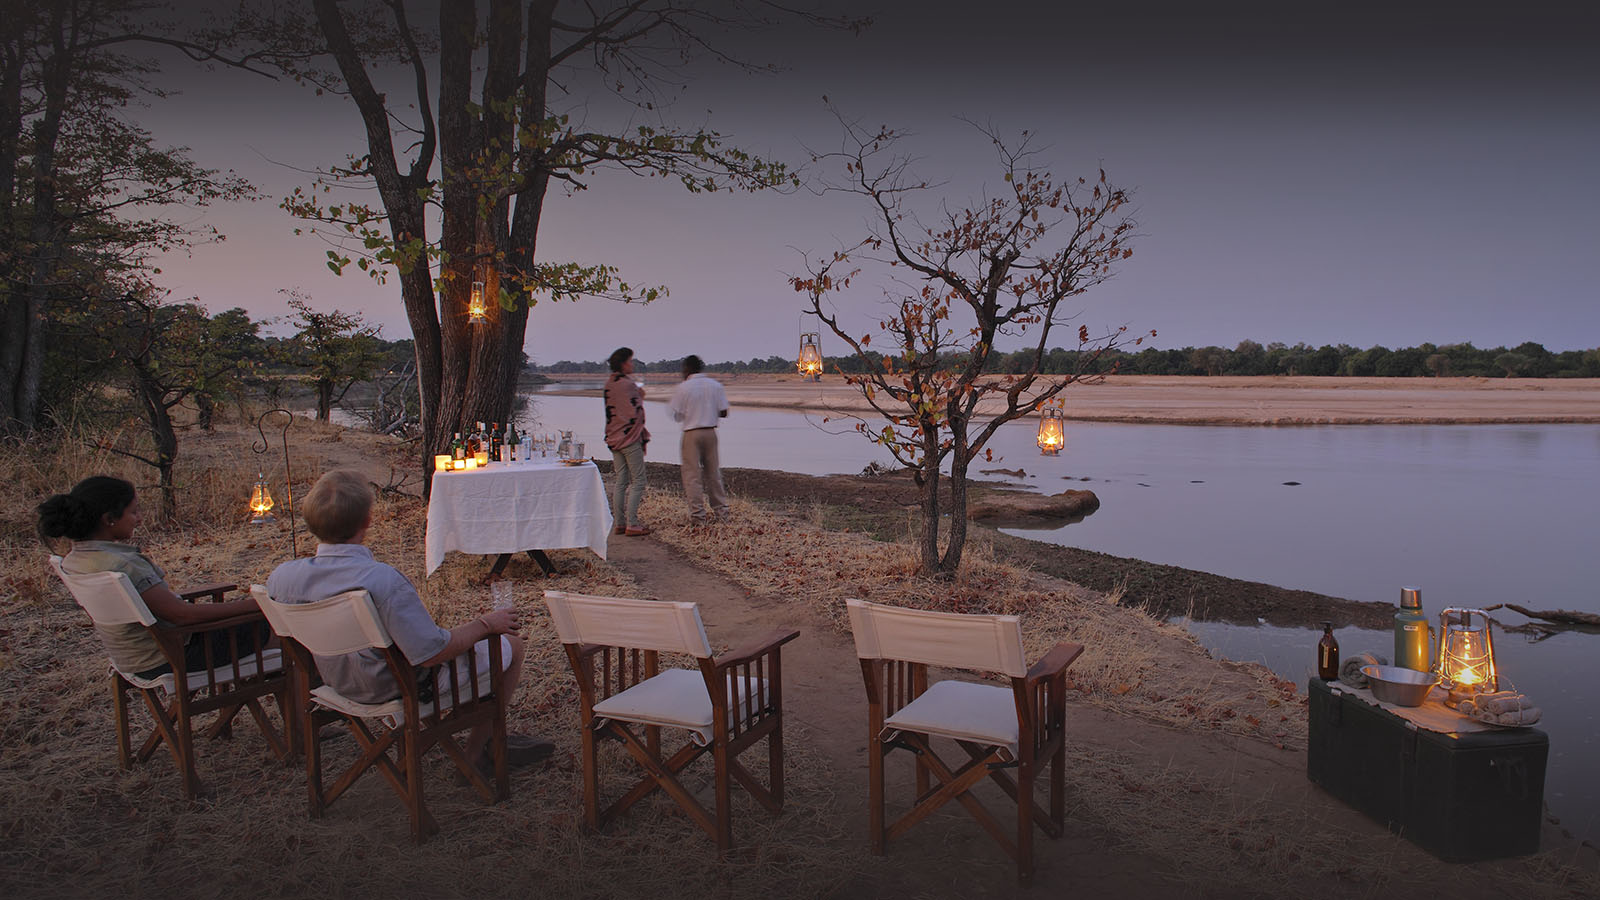 mchenja-bush-camp-lodge-zambia-in-style-tours-safari-packages-lodges-south-luangwa-national-park-river